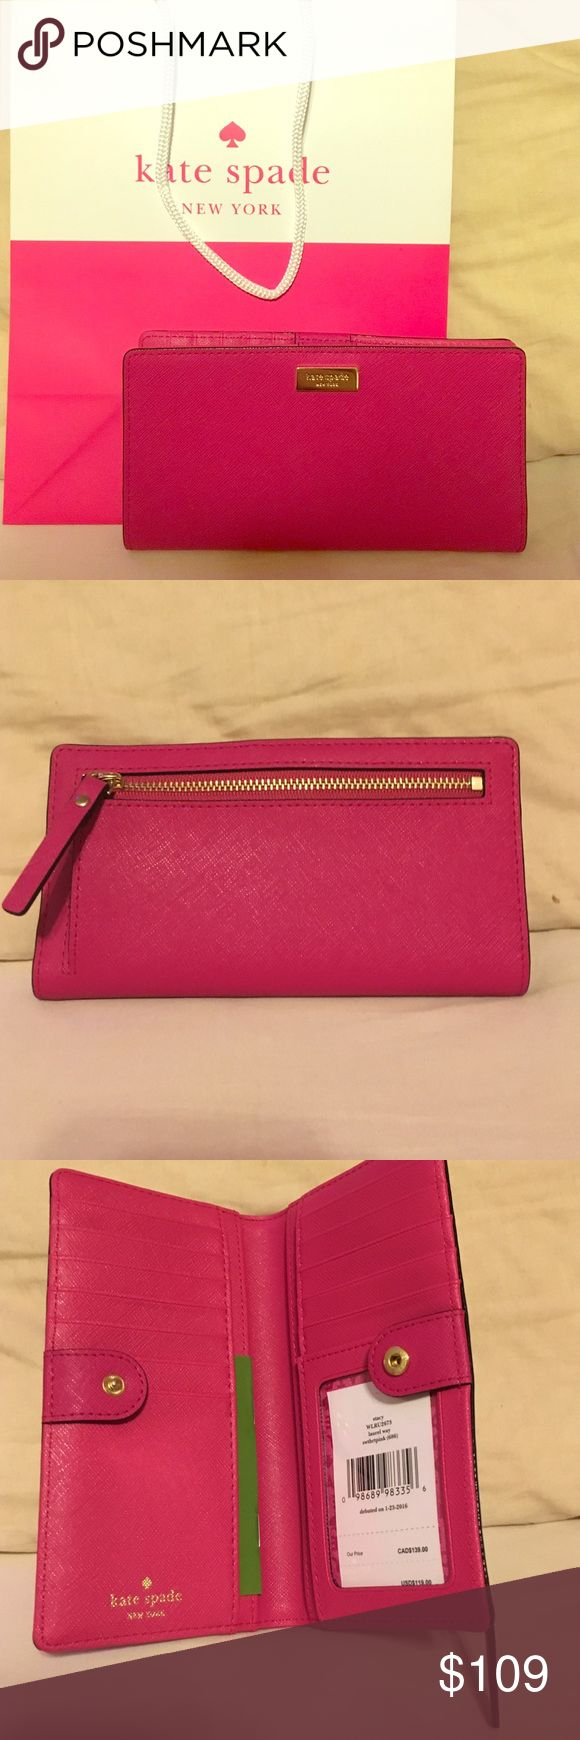 Kate Spade Pink Wallet 💖Brand new Kate Spade Wallet 👛 Laurel Way Collection Sweetheart Pink with Gold accents 💖 Super cute and chic! 💅🏼  🎀 Gift bag, sales tag, and leather care guide included! 🛍  Reasonable offers will be considered. Trades for good quality items only.  Thanks! 😍 kate spade Bags Wallets